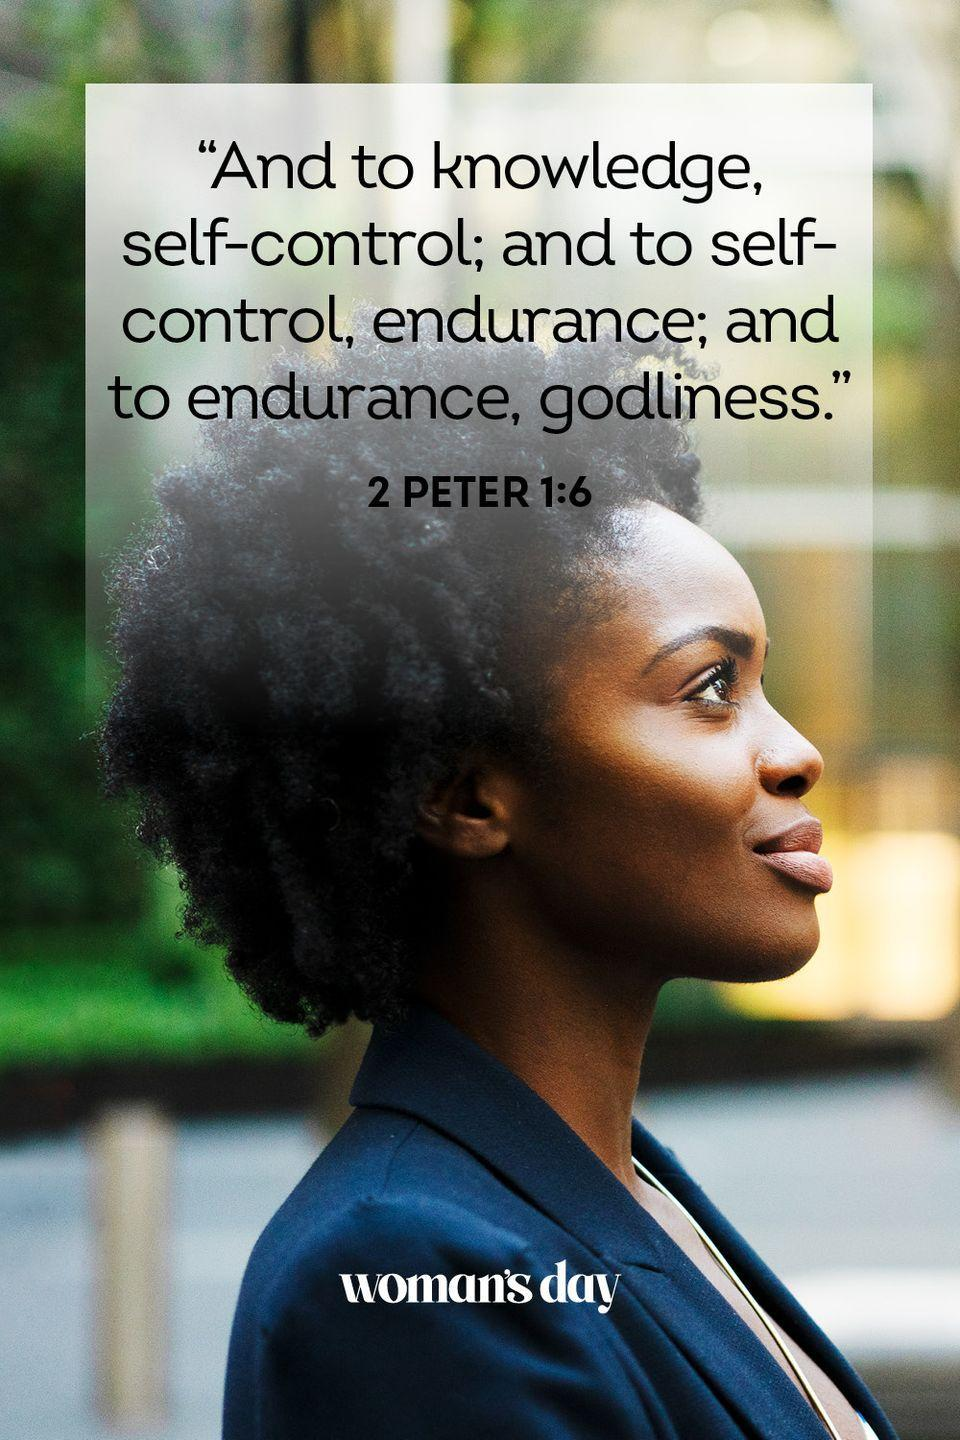 """<p>""""And to knowledge, self-control; and to self-control, endurance; and to endurance, godliness."""" — 2 Peter 1:6</p><p><strong>THE GOOD NEWS</strong>: Small acts lead to bigger acts, so don't be afraid to start small when you're overcoming a problem.</p>"""